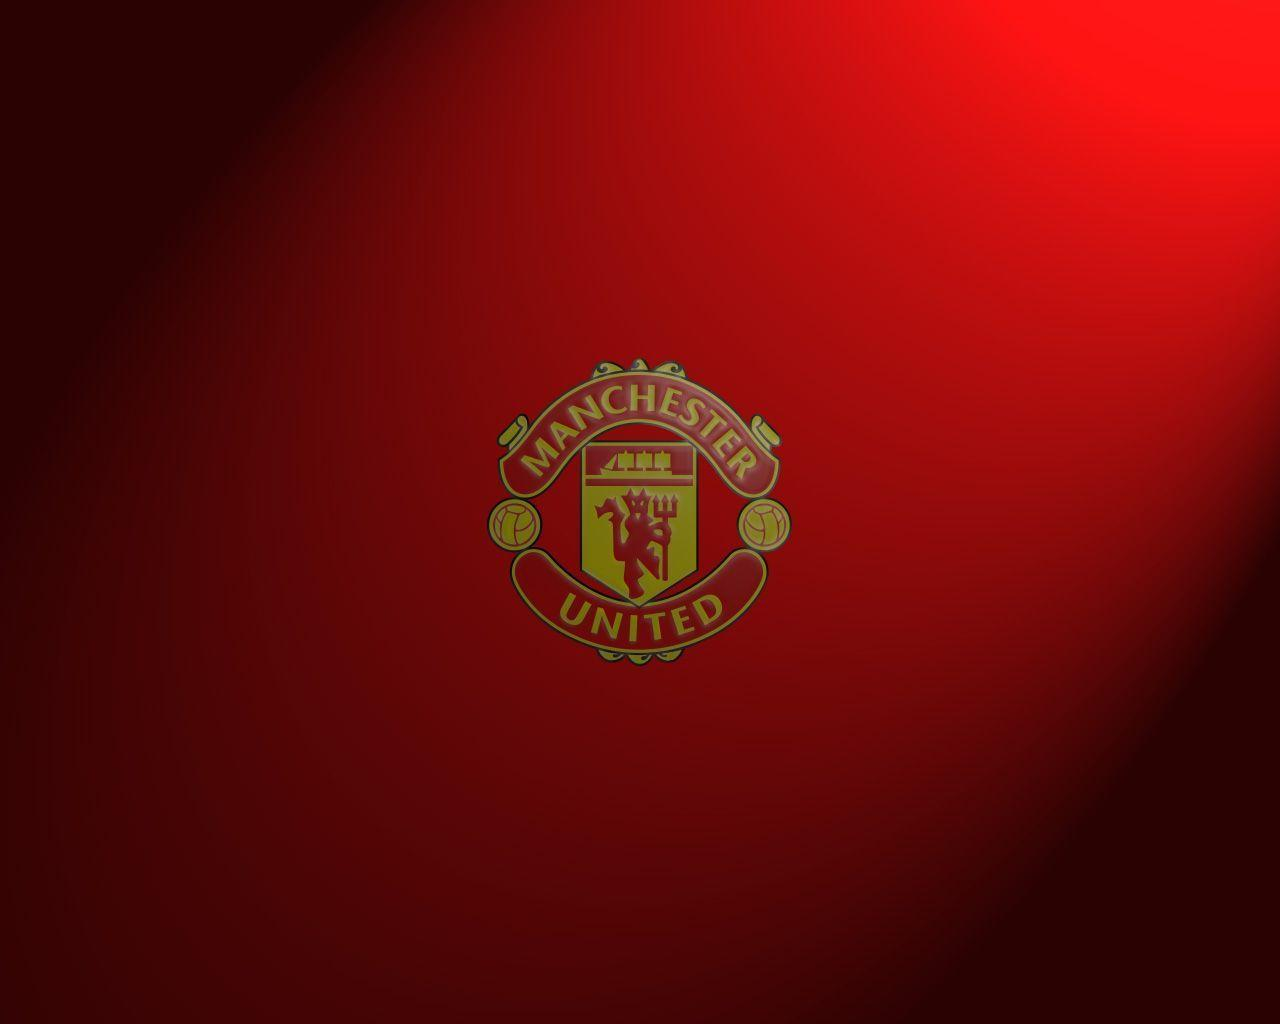 Manchester United Wallpapers - Wallpaper Cave